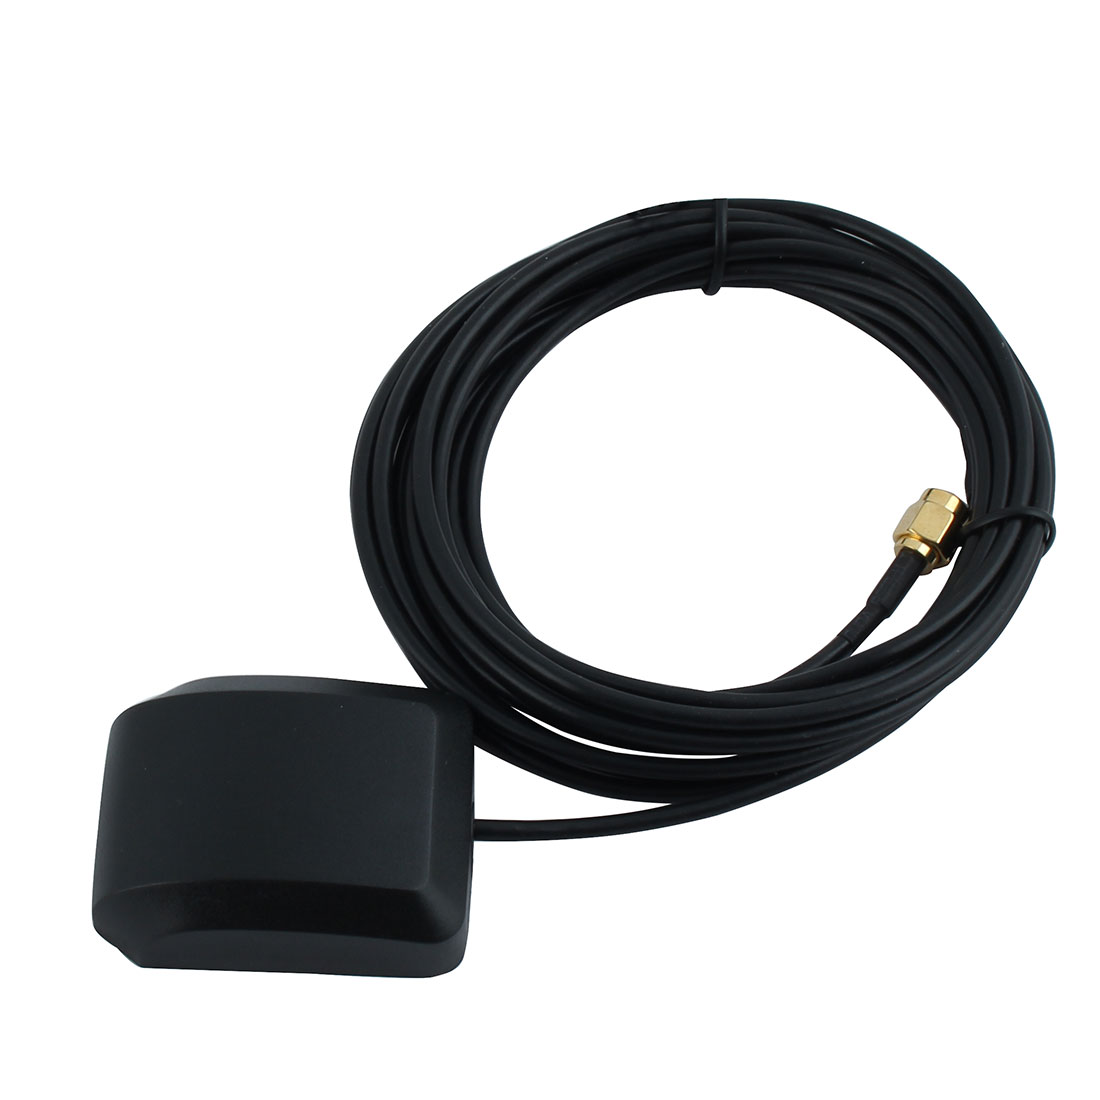 Household Office Cable SMA Male Straight GPS Navigation Antenna 3 Meters